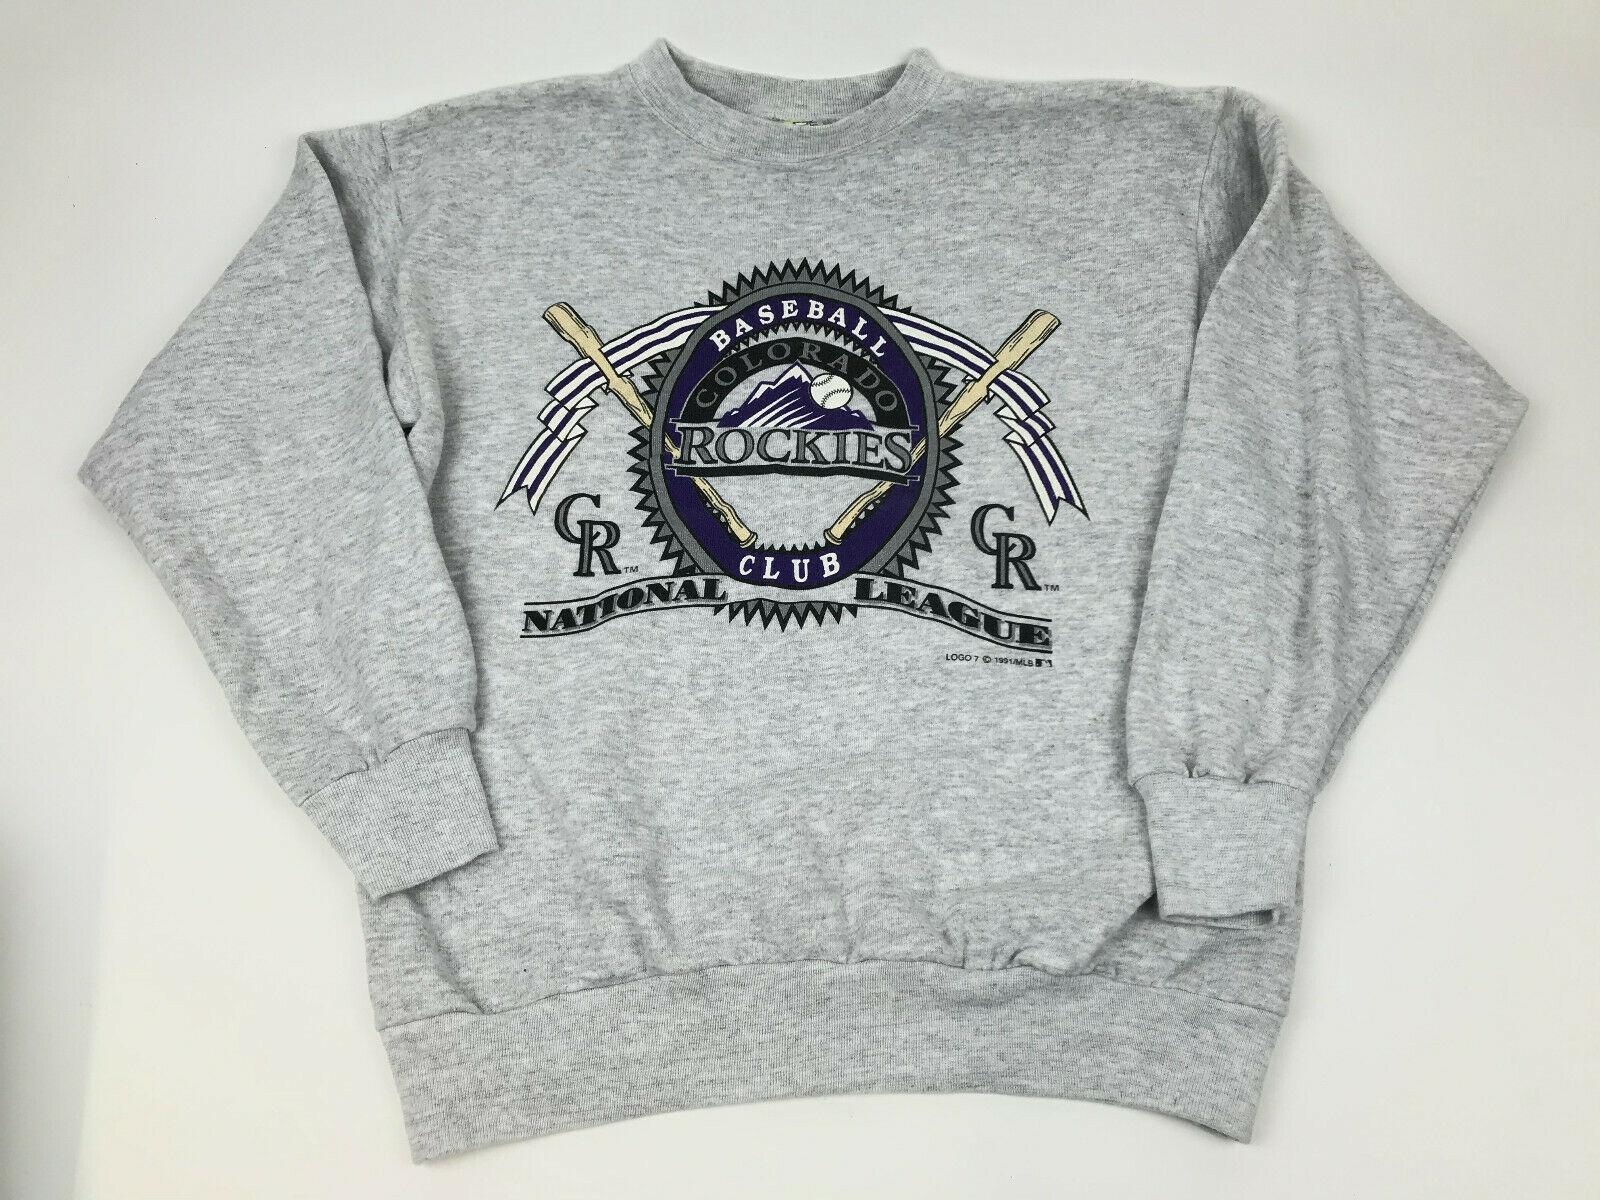 Primary image for Vtg 90s COLORADO ROCKIES Pullover Sweatshirt LOGO 7 1991 MLB Large Graphic